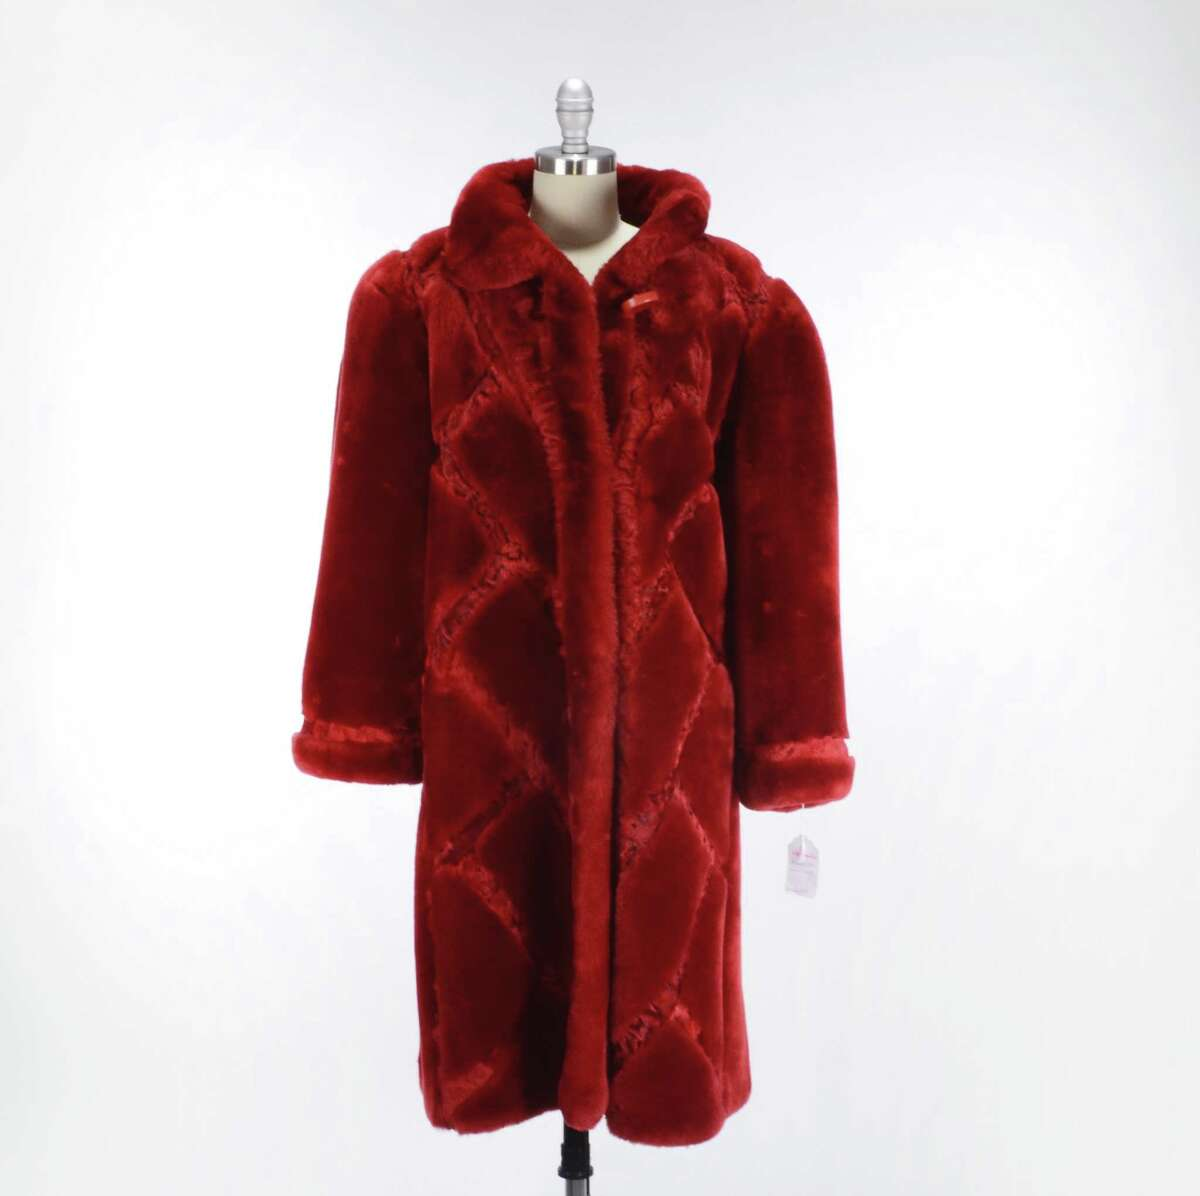 May 23 Clothing and furs, $350 Second Chance Thrift, 2200 block N. Gordon Street, Alvin A warrant has been issued.